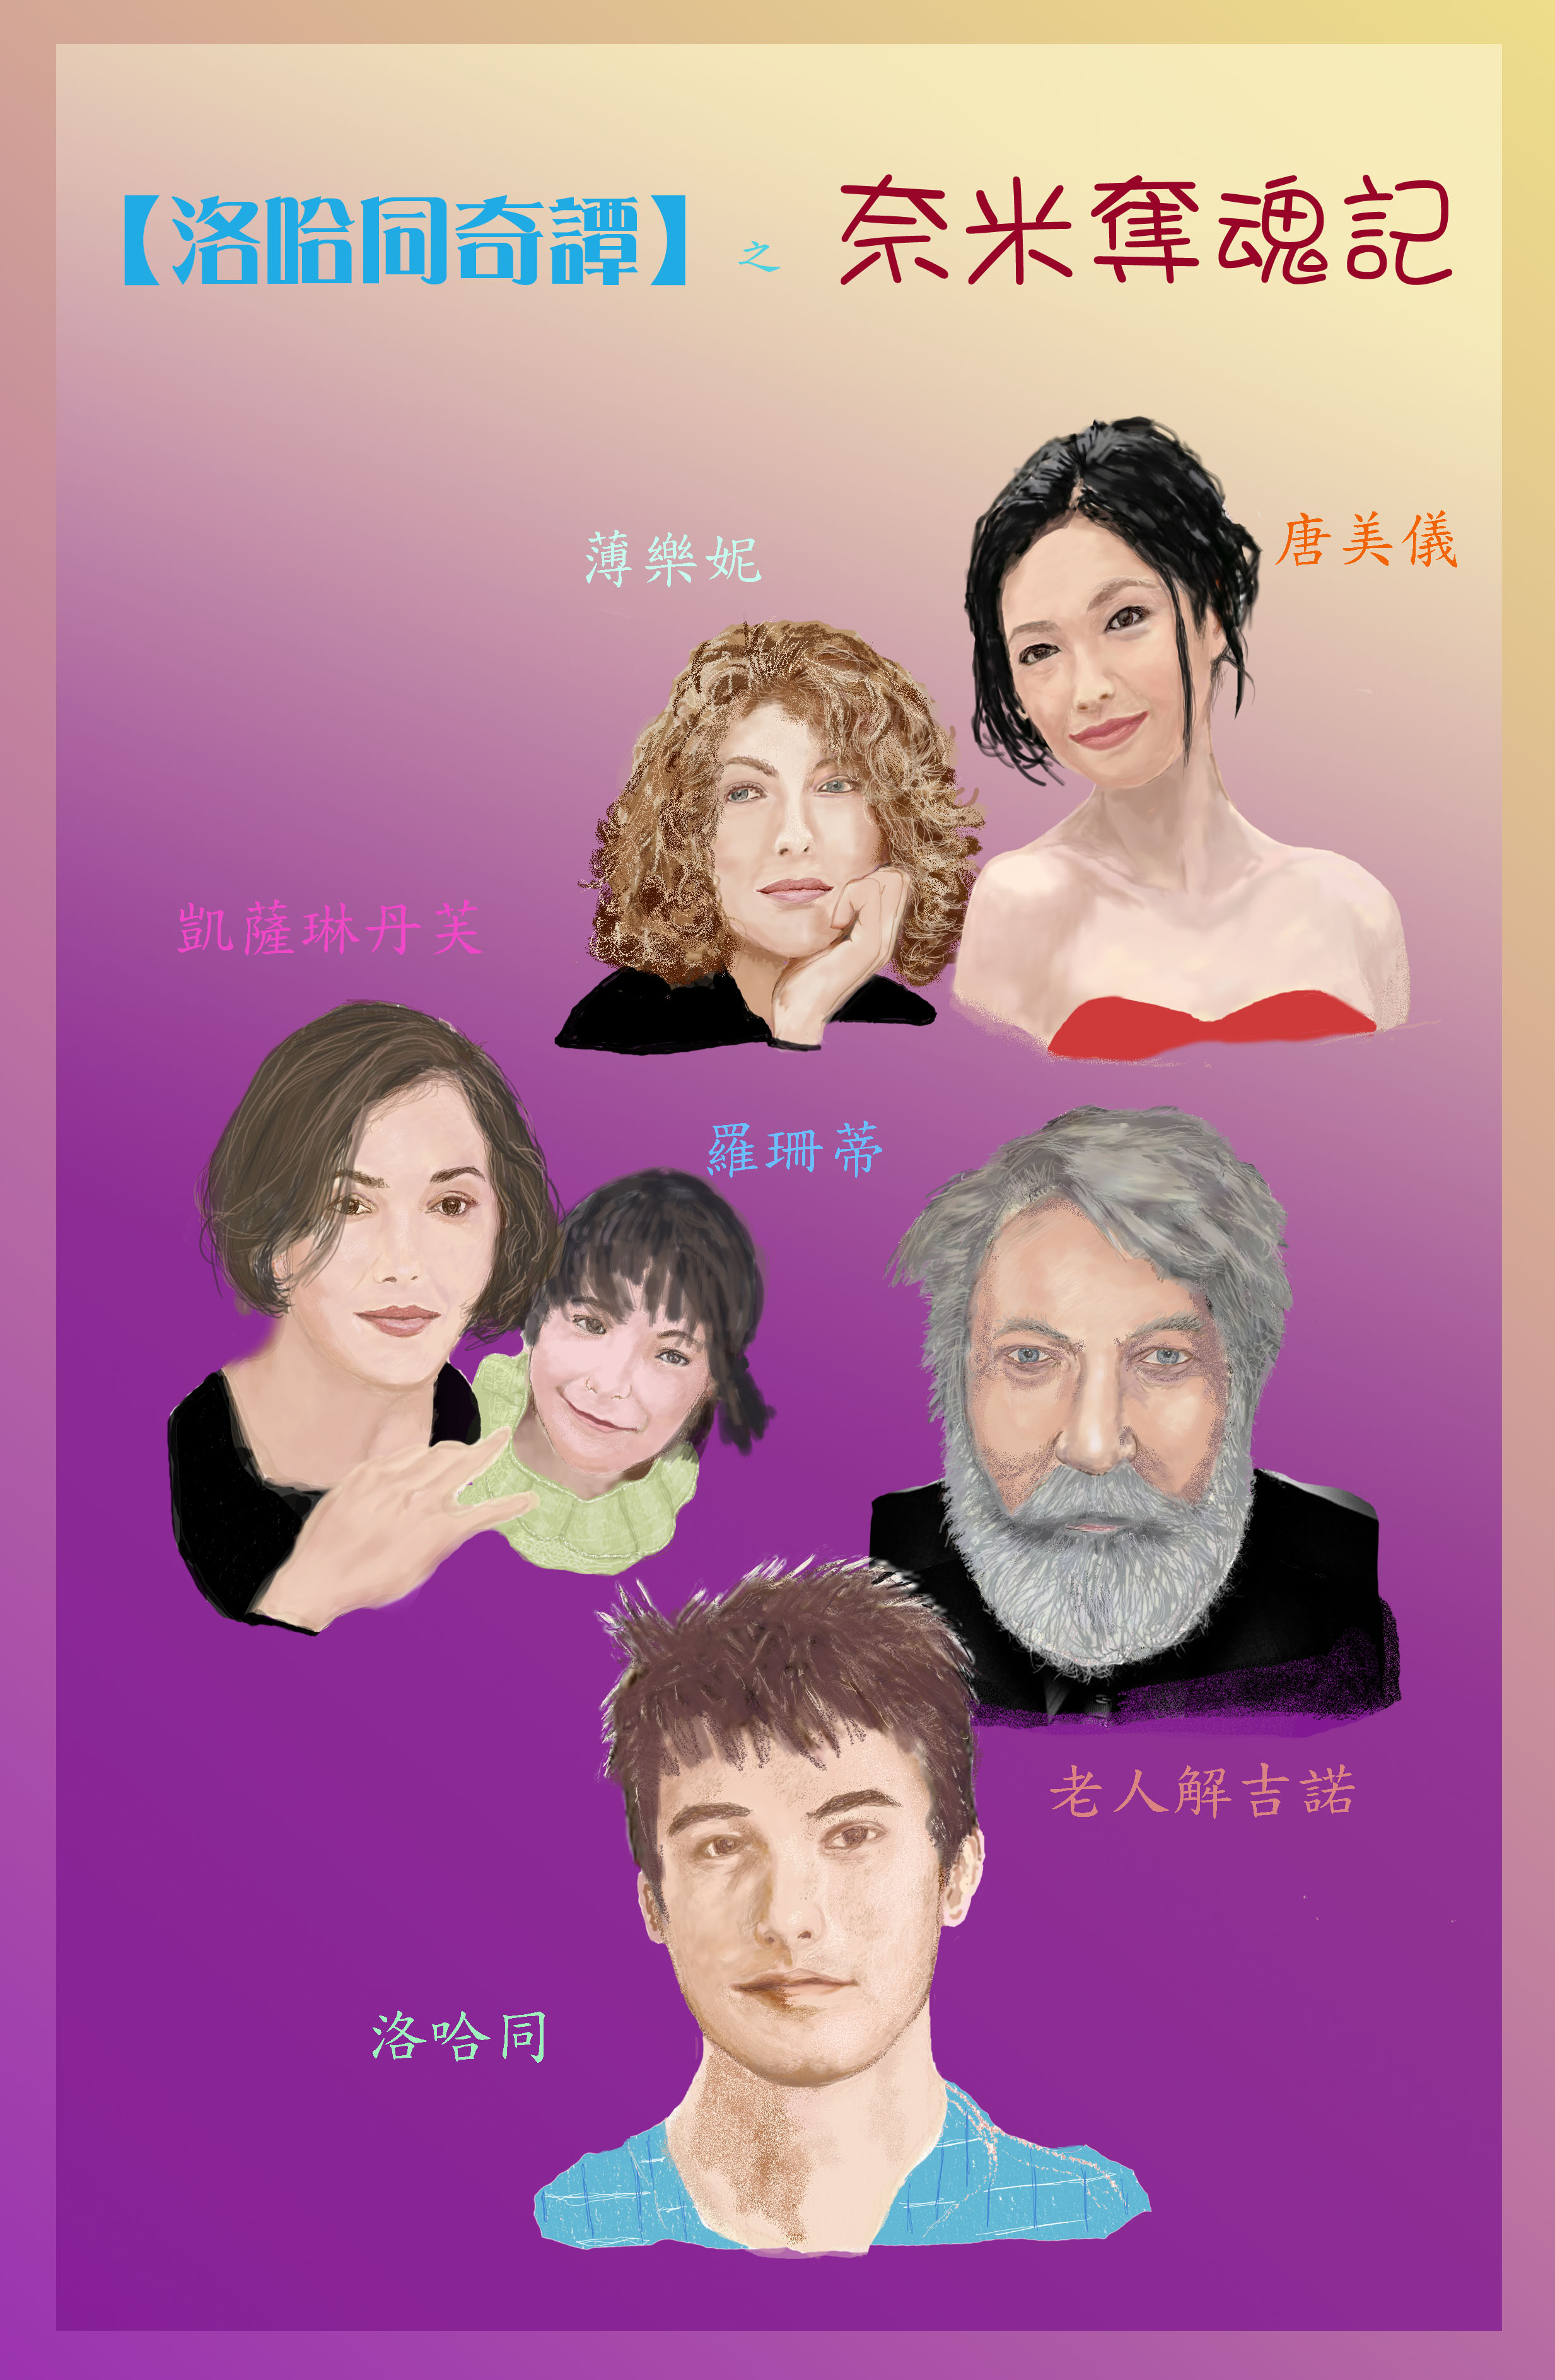 Chn Characters Poster a